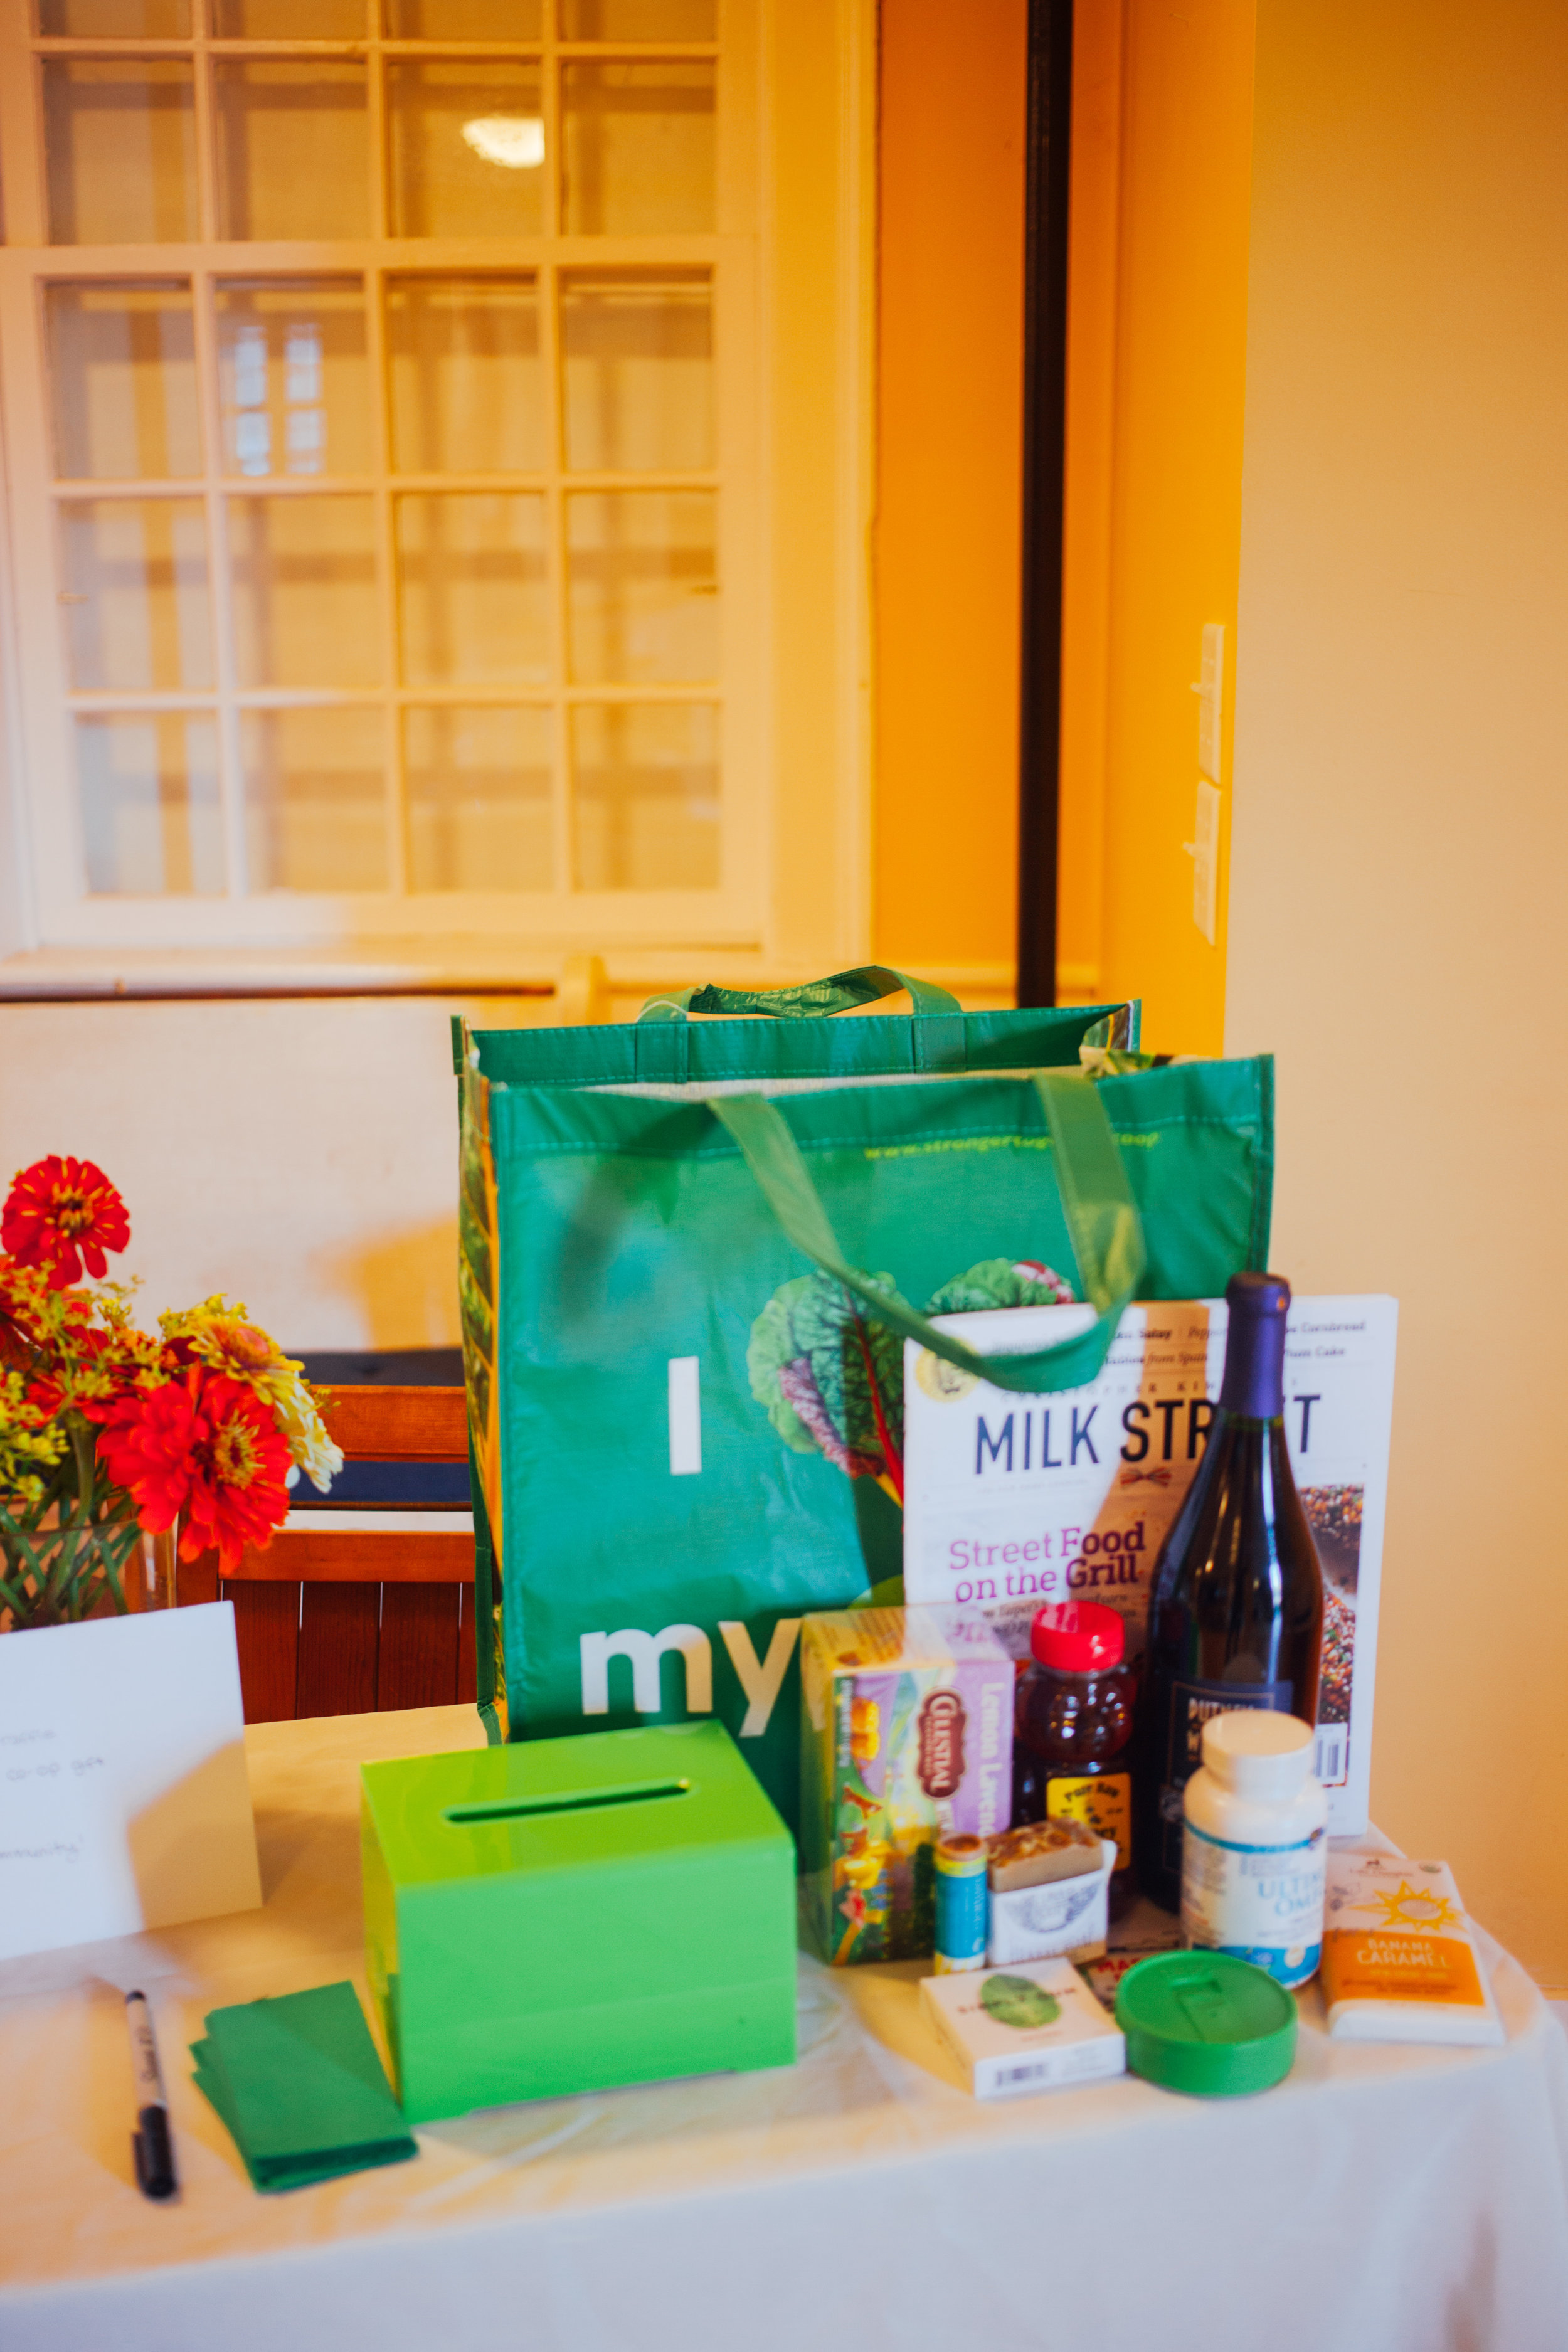 Community member and owner of Antidote Books Ruth Rodriguez won our special Putney Co-op raffle for attendees of the party!